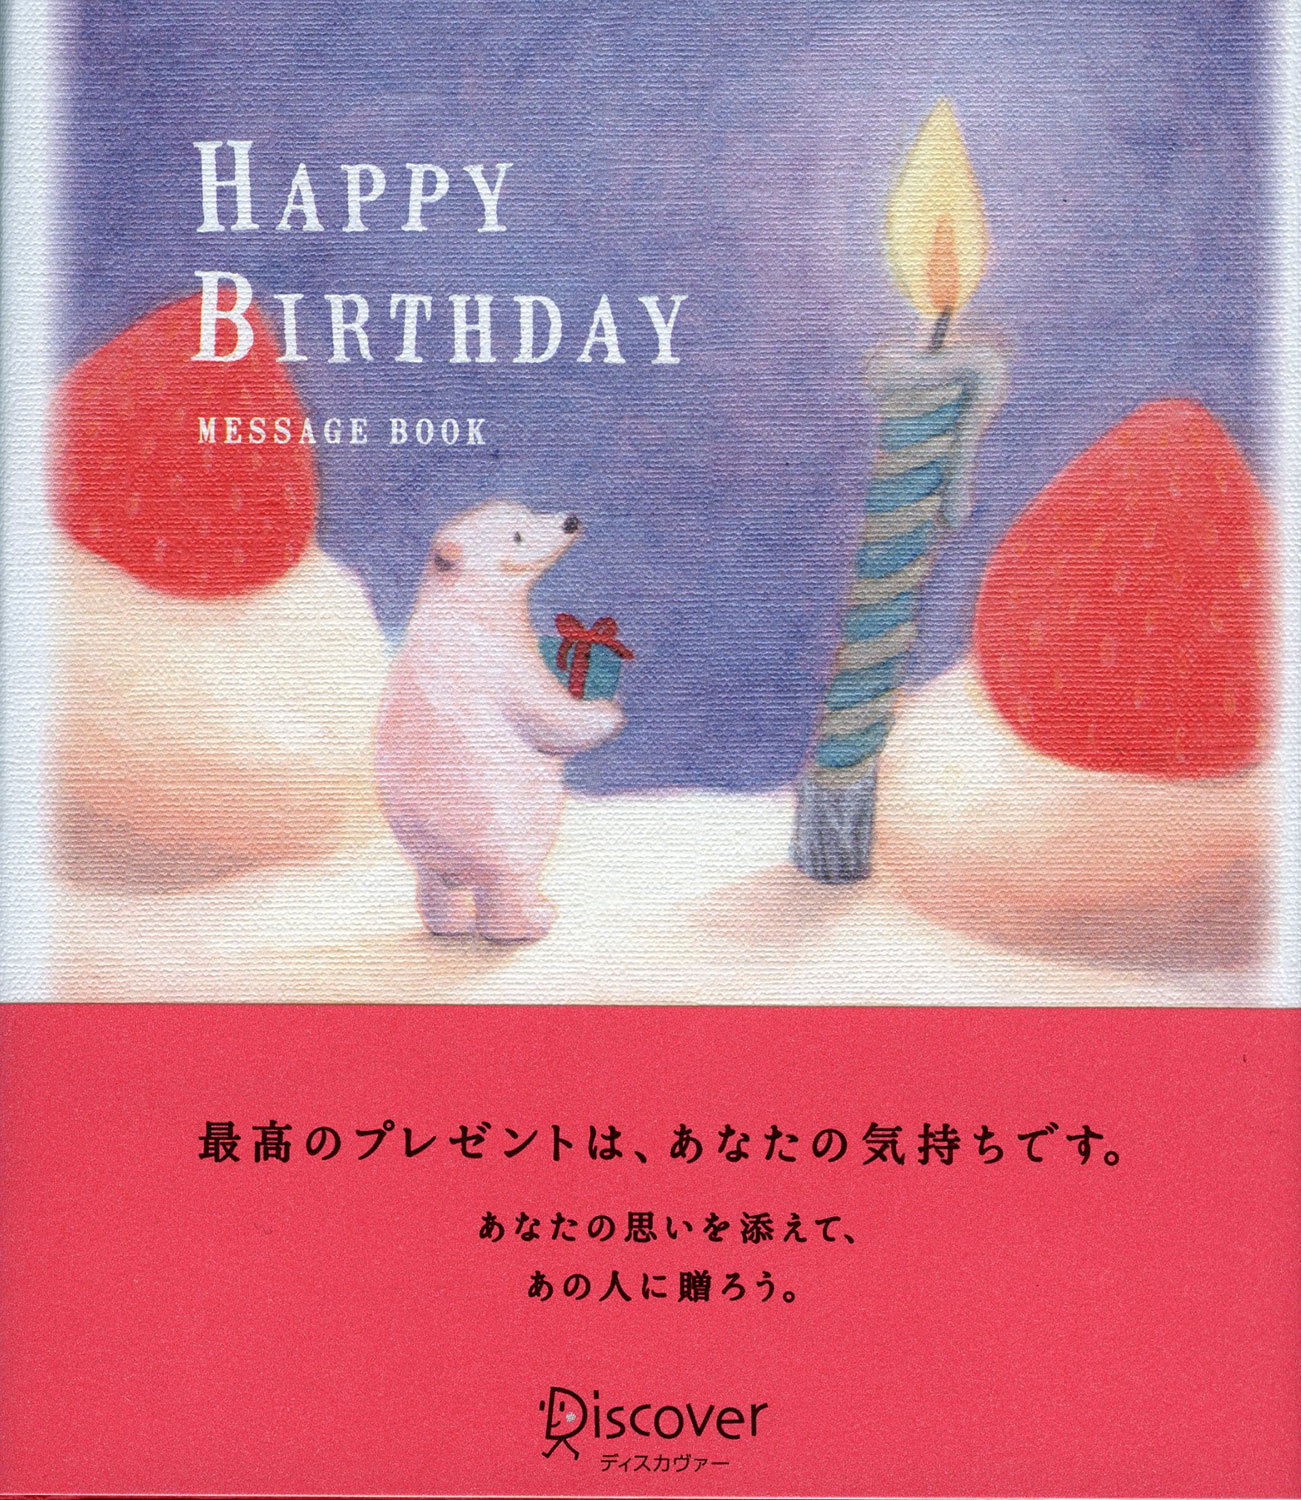 MESSAGE BOOK HAPPY BIRTHDAY